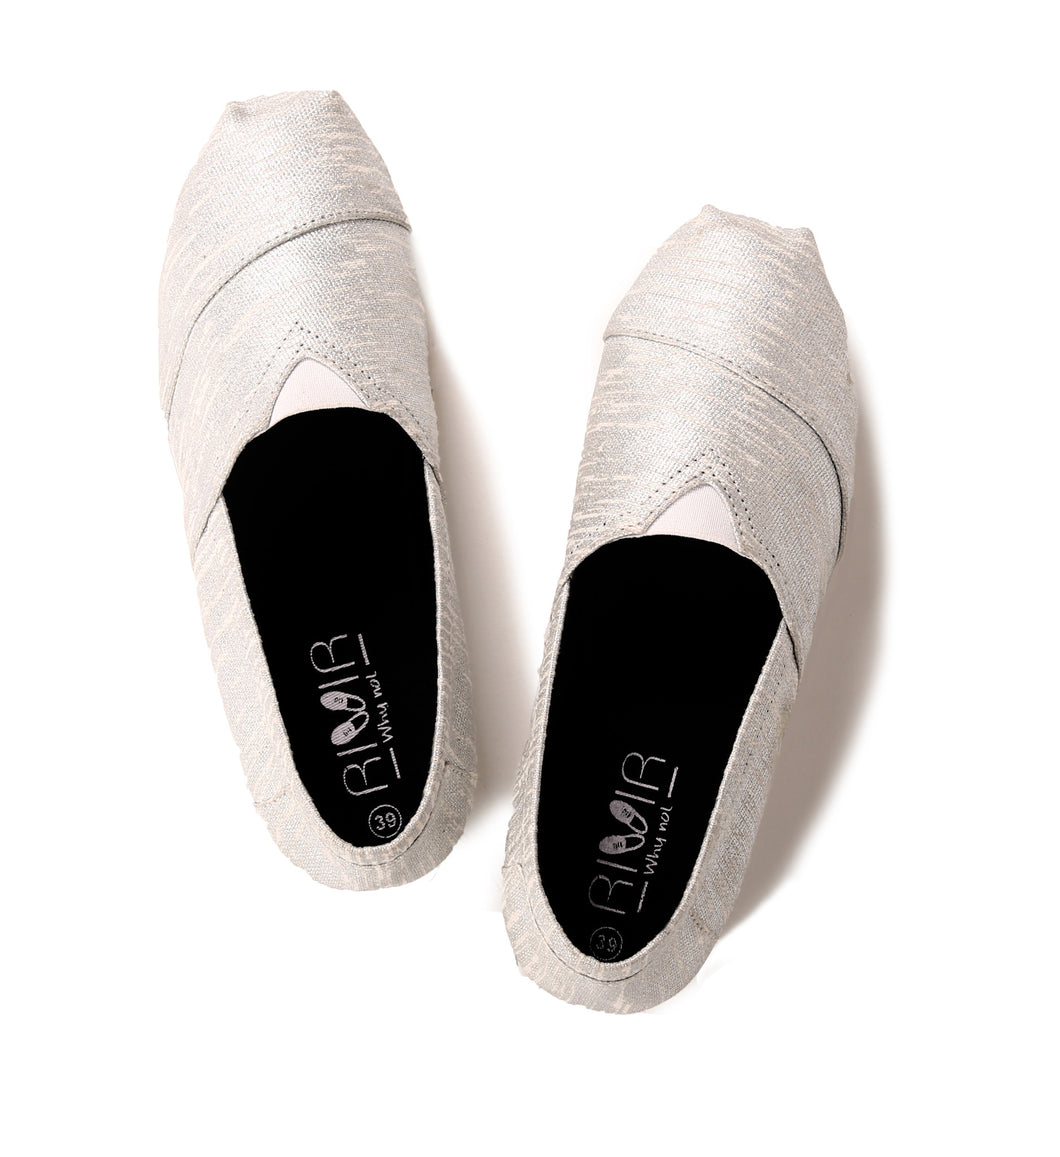 rivir-shoes - The Silver Lining : Espadrilles for Women - Rivir - Espadrilles